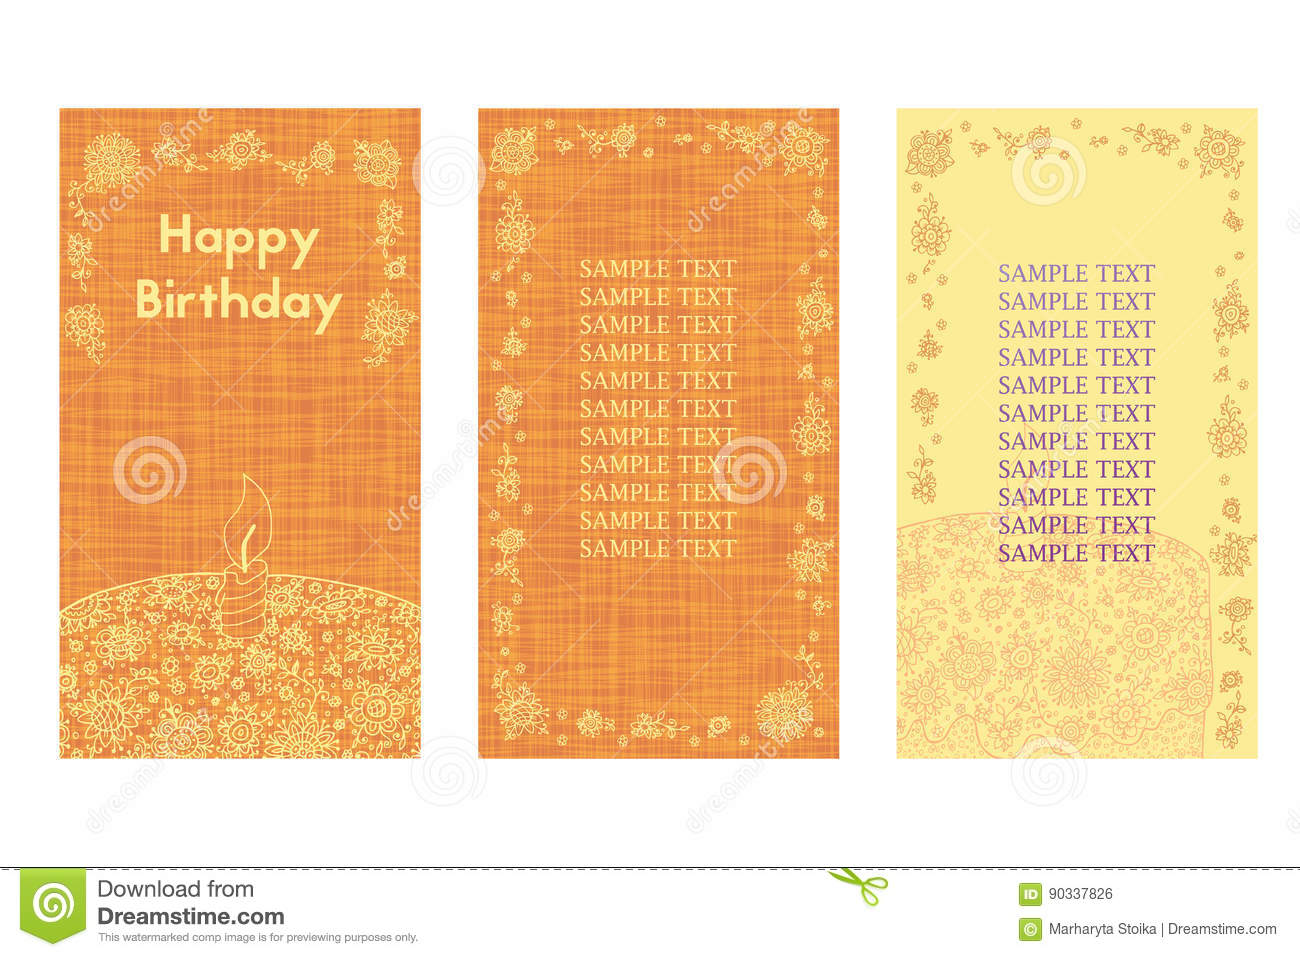 Happy Birthday Greeting Card Three Different Vector Patterns